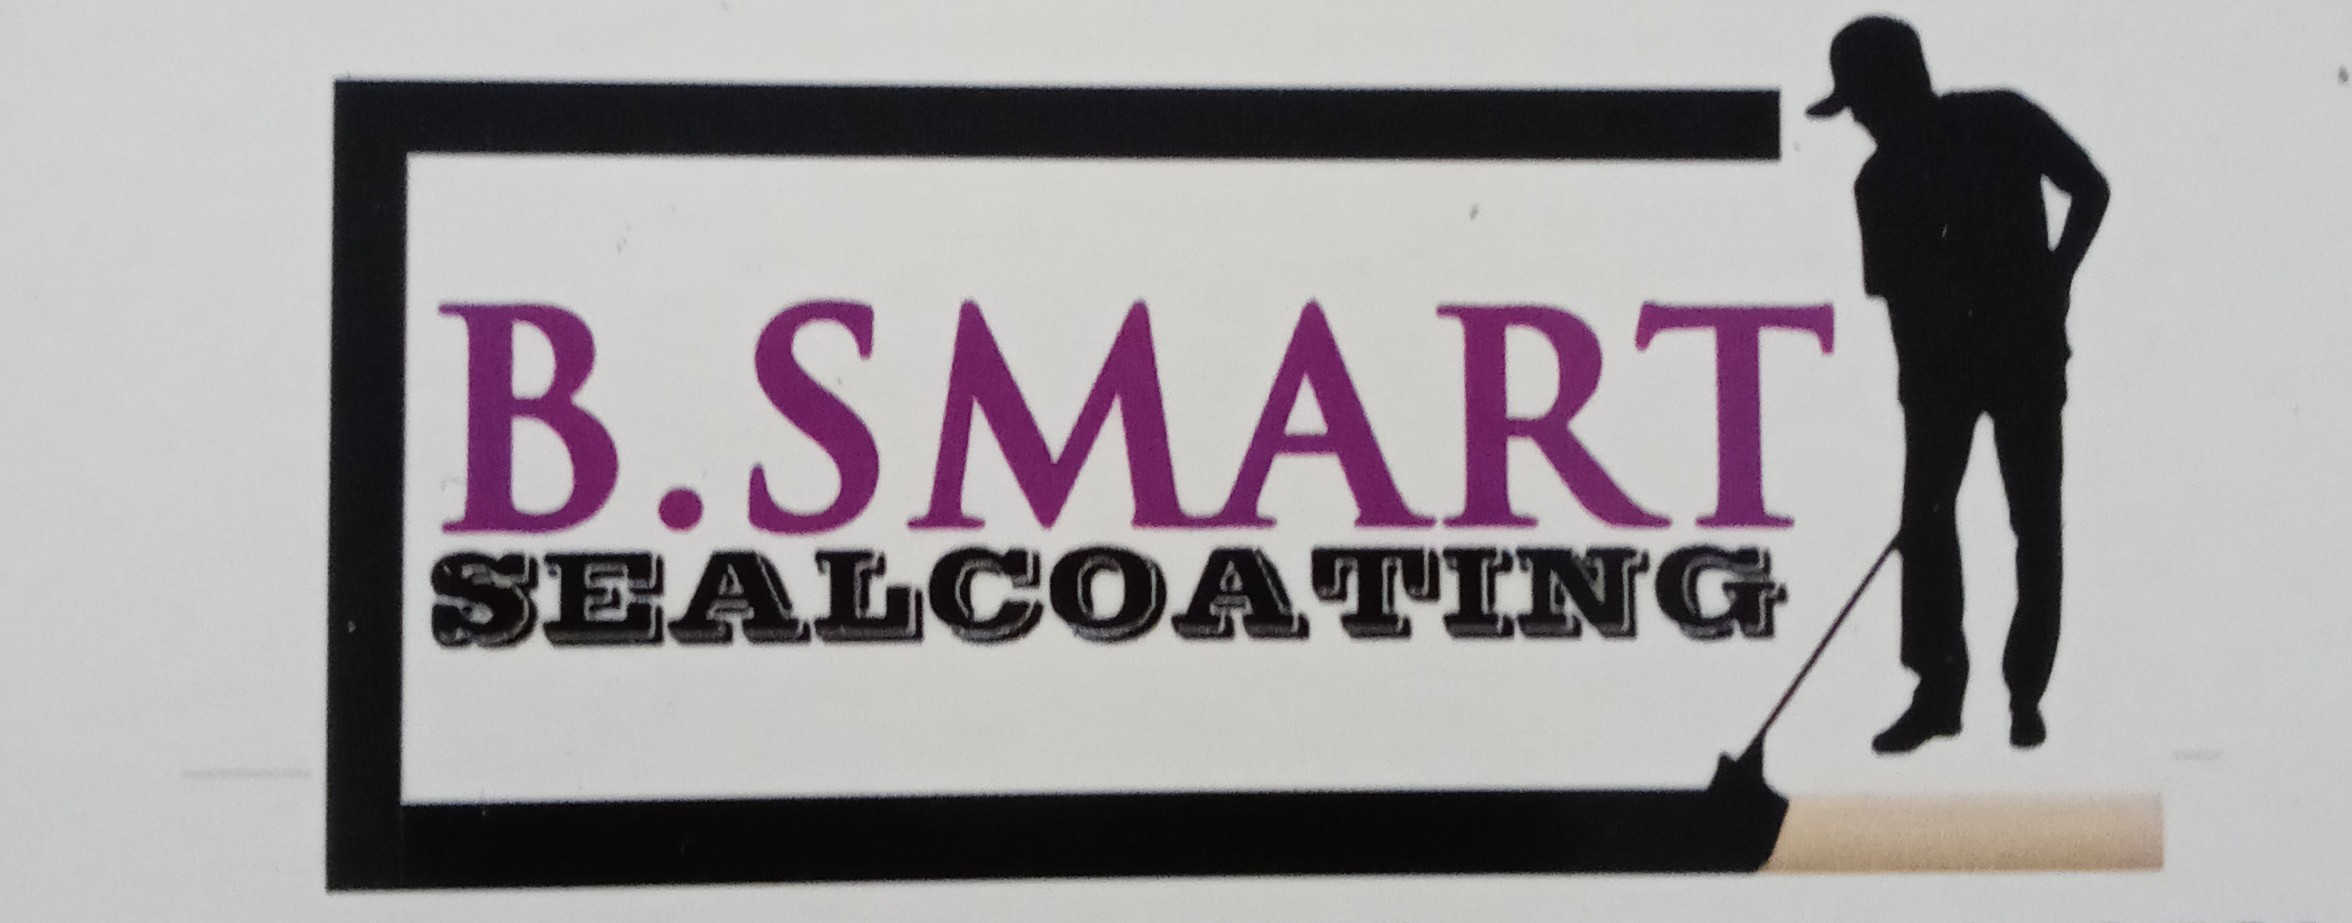 B. Smart Sealcoating LLC.